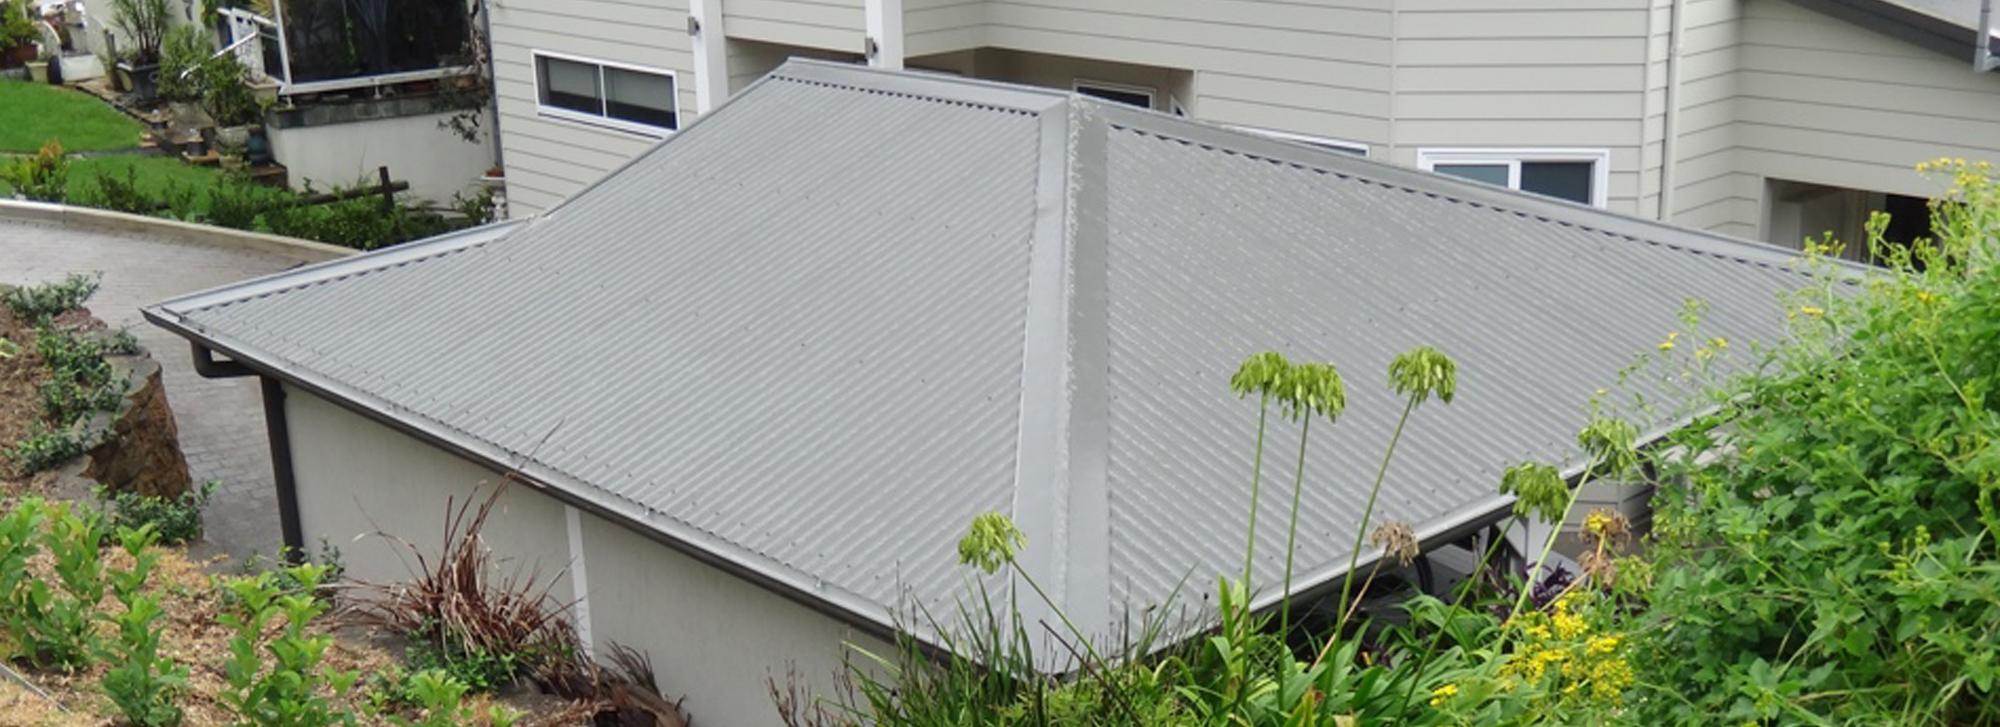 Roofing and Guttering